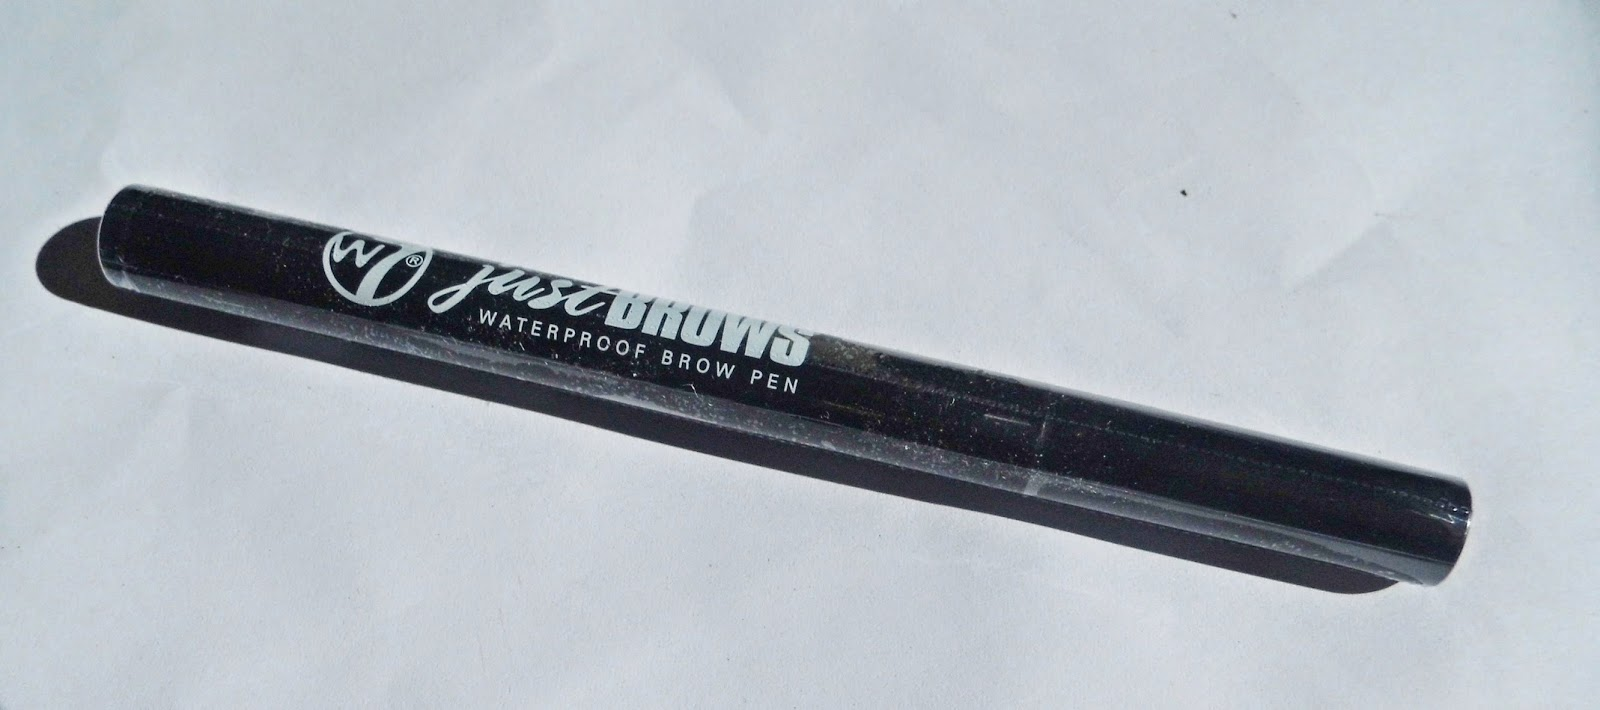 w7-cosmetics-just-brows-waterproof-brow-pen-picture